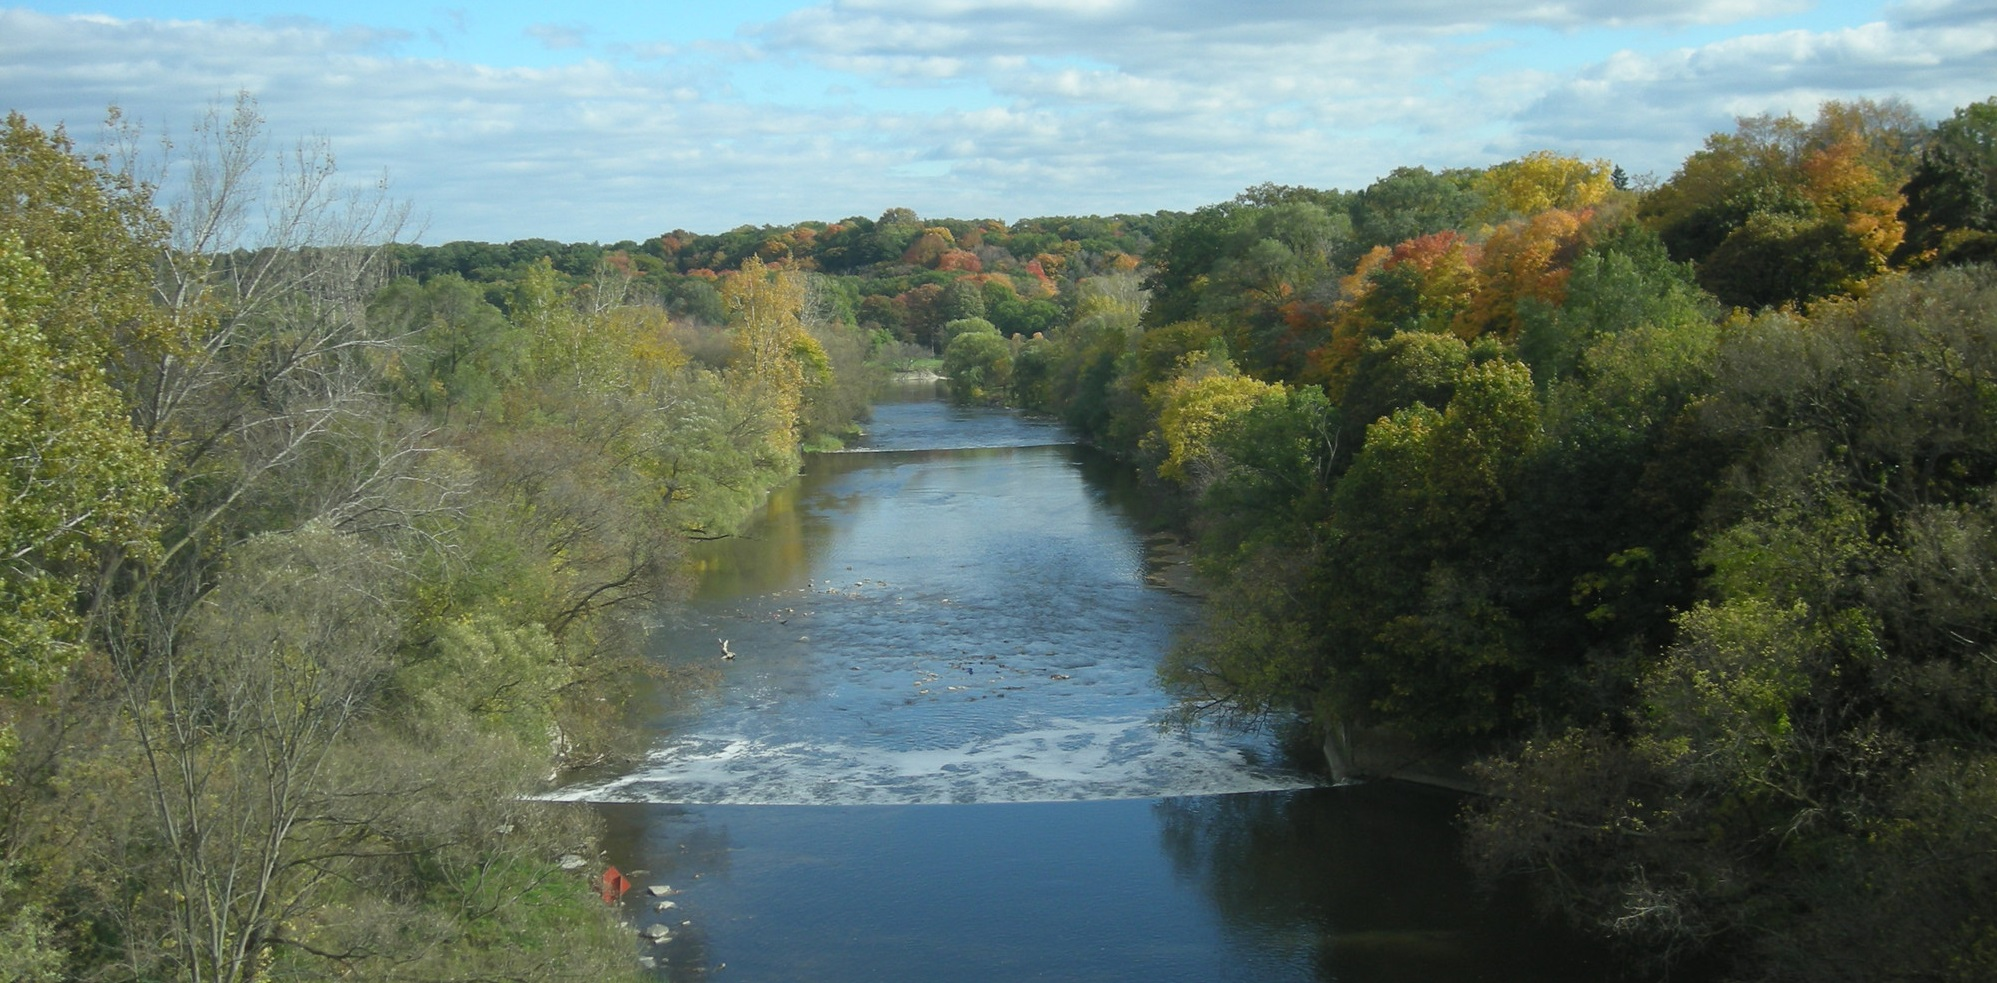 View of the Humber River